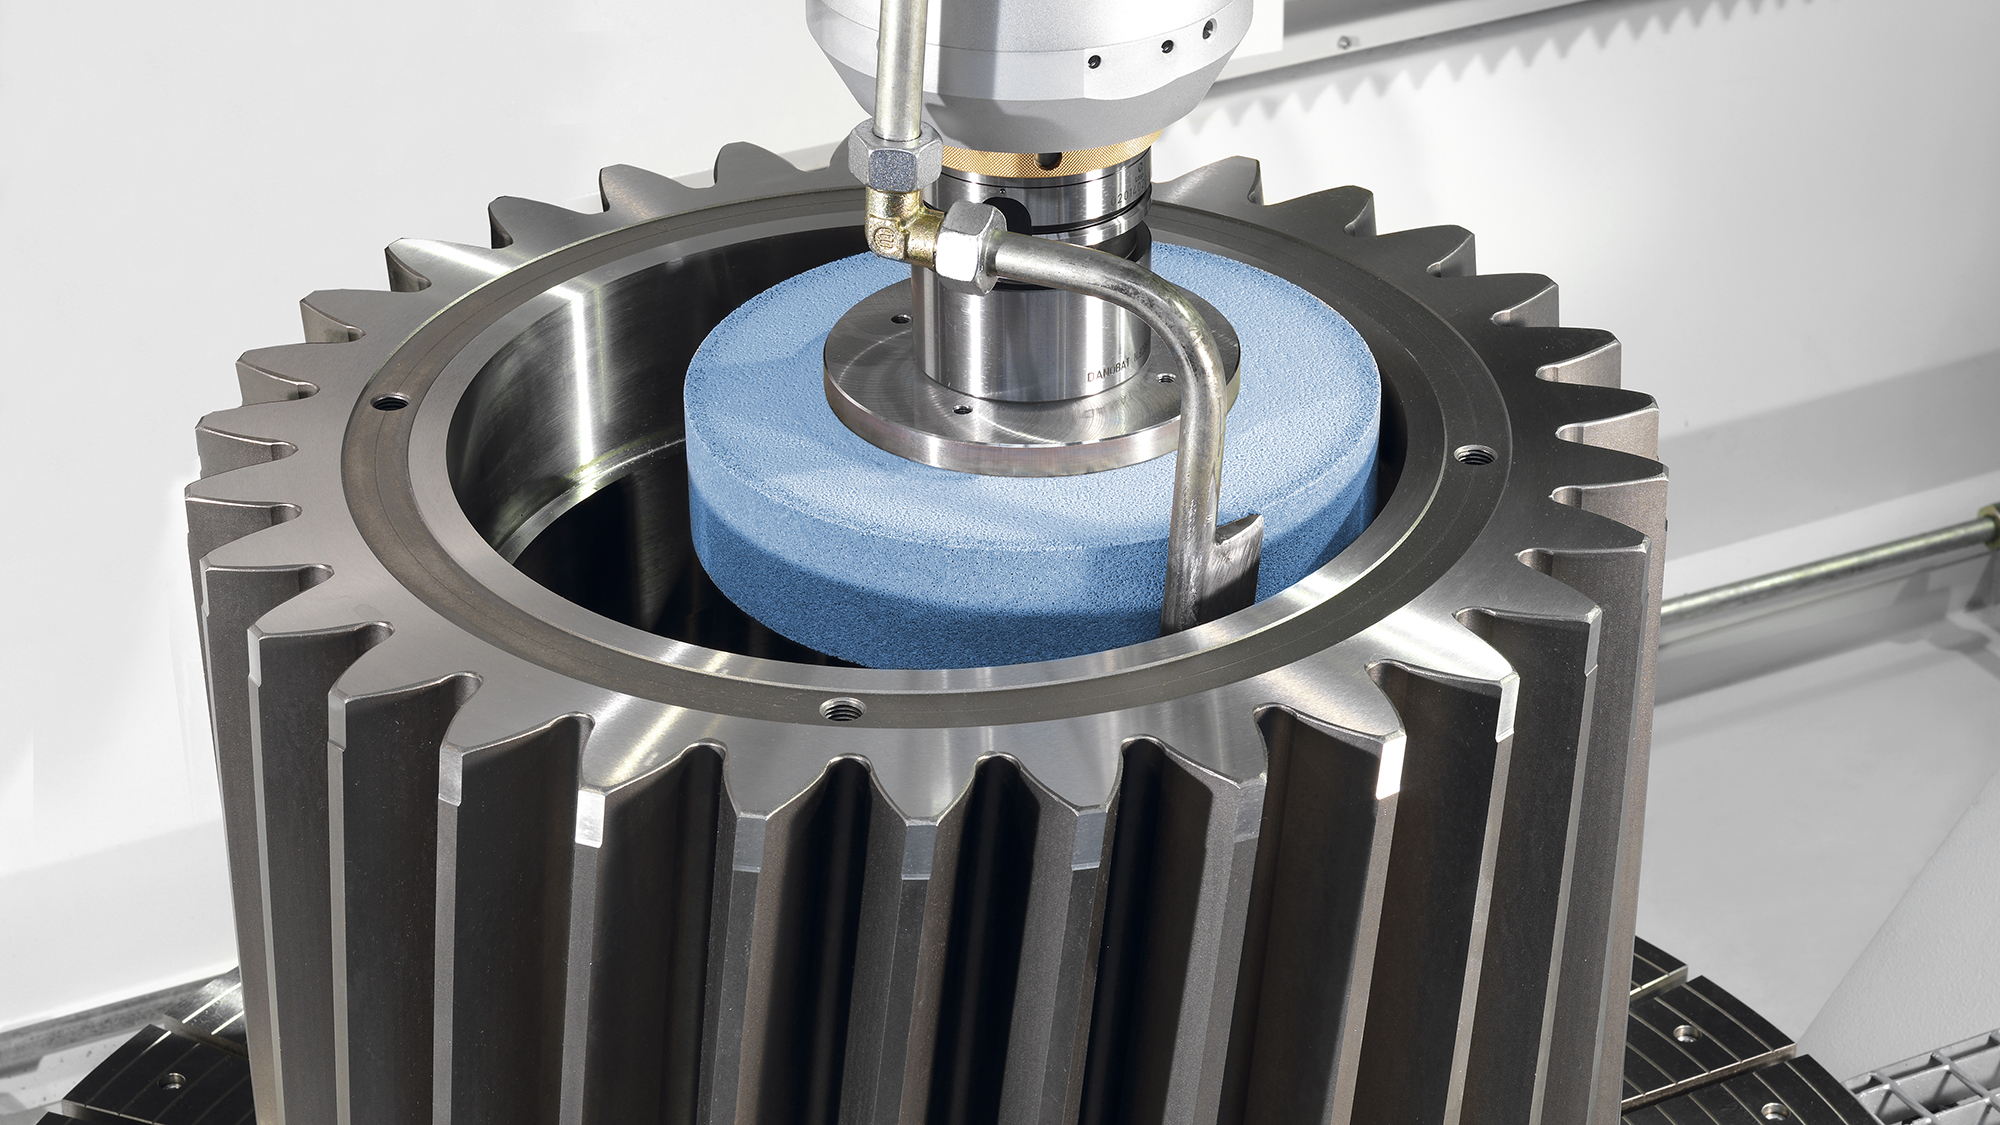 Transmission gears machining